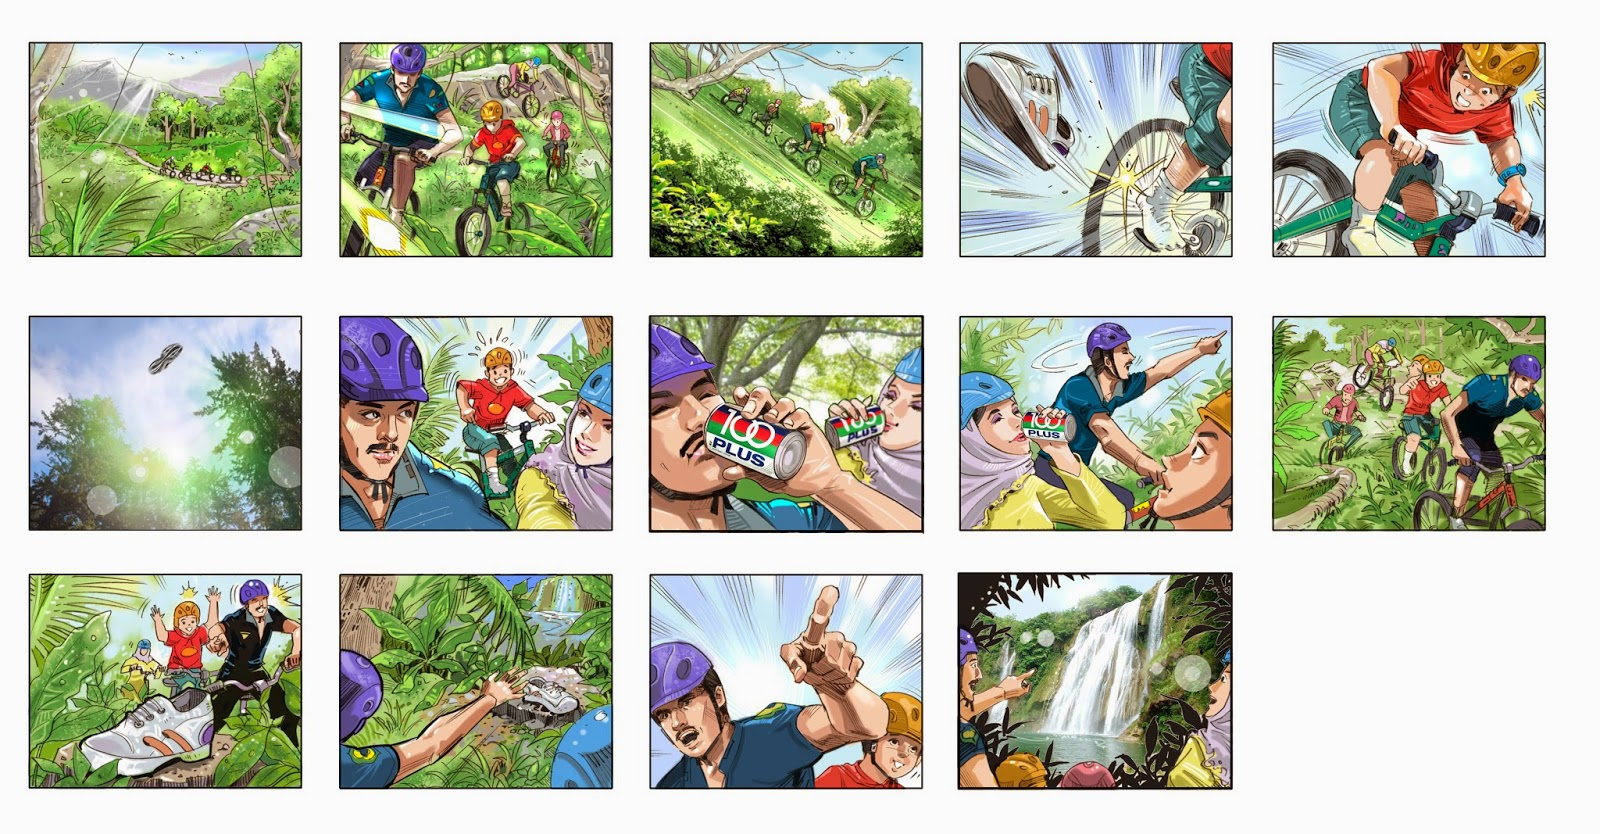 Superb STORYBOARD / VISUAL